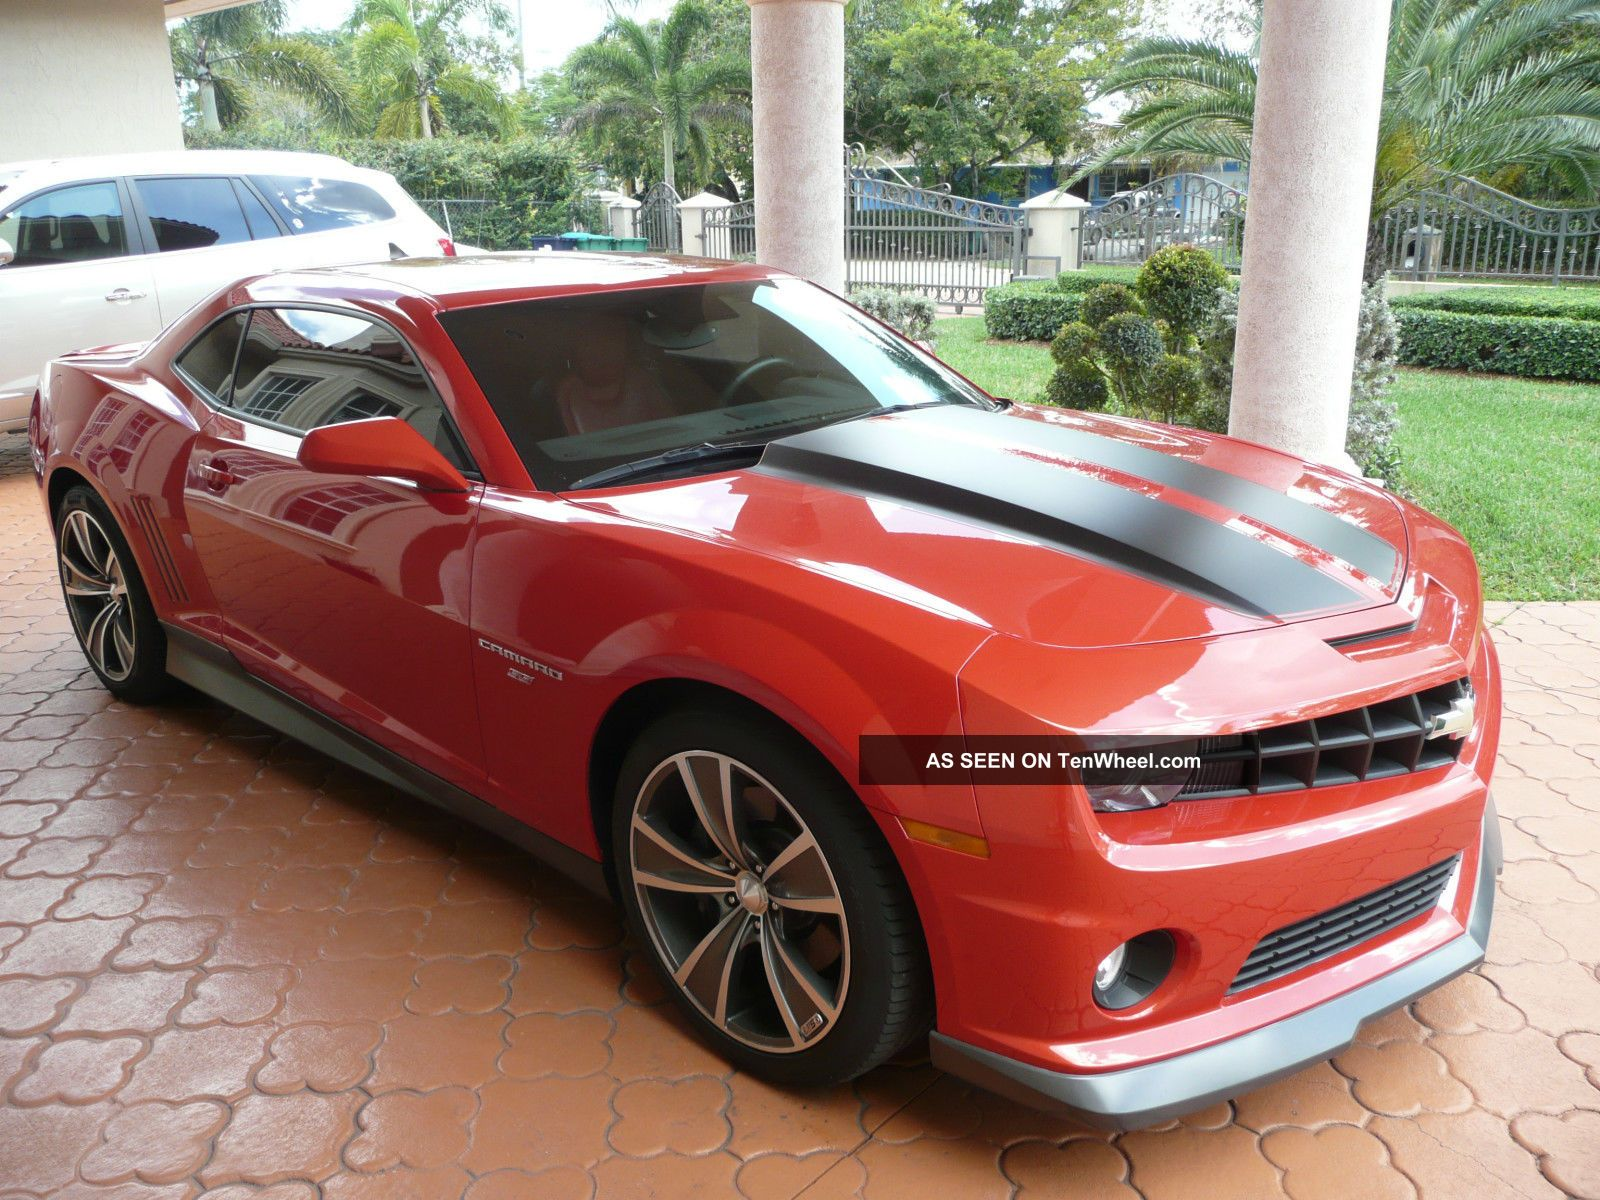 2010 chevrolet camaro specs 2 door coupe 2ss. Black Bedroom Furniture Sets. Home Design Ideas